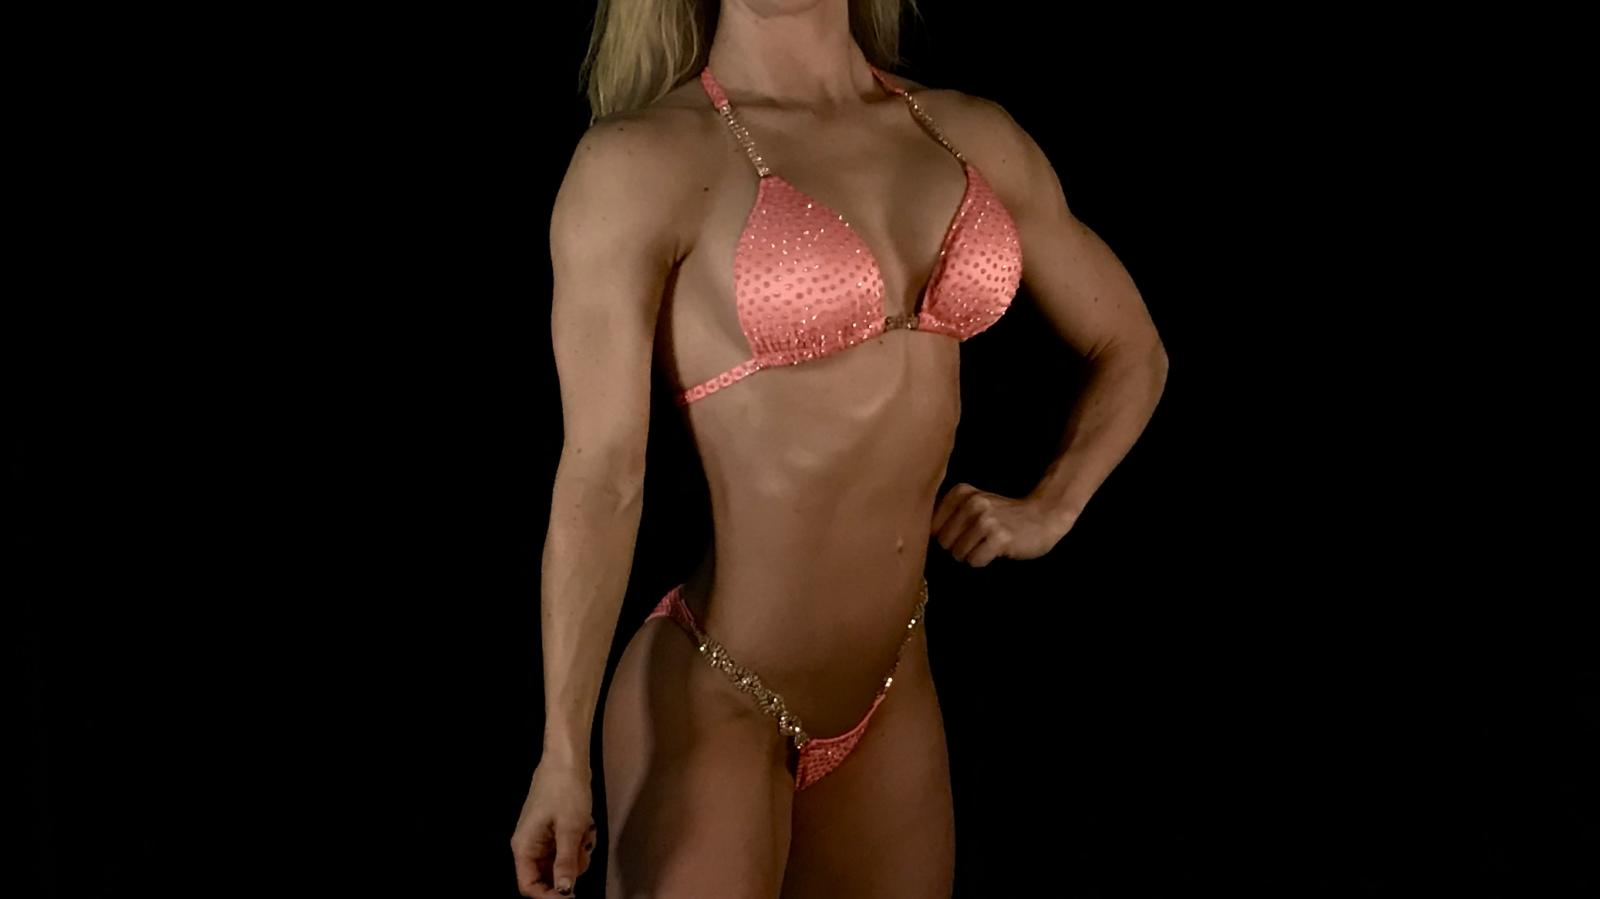 Penelope Peach Bikini Competition Suit by Merry Christine Bodywear